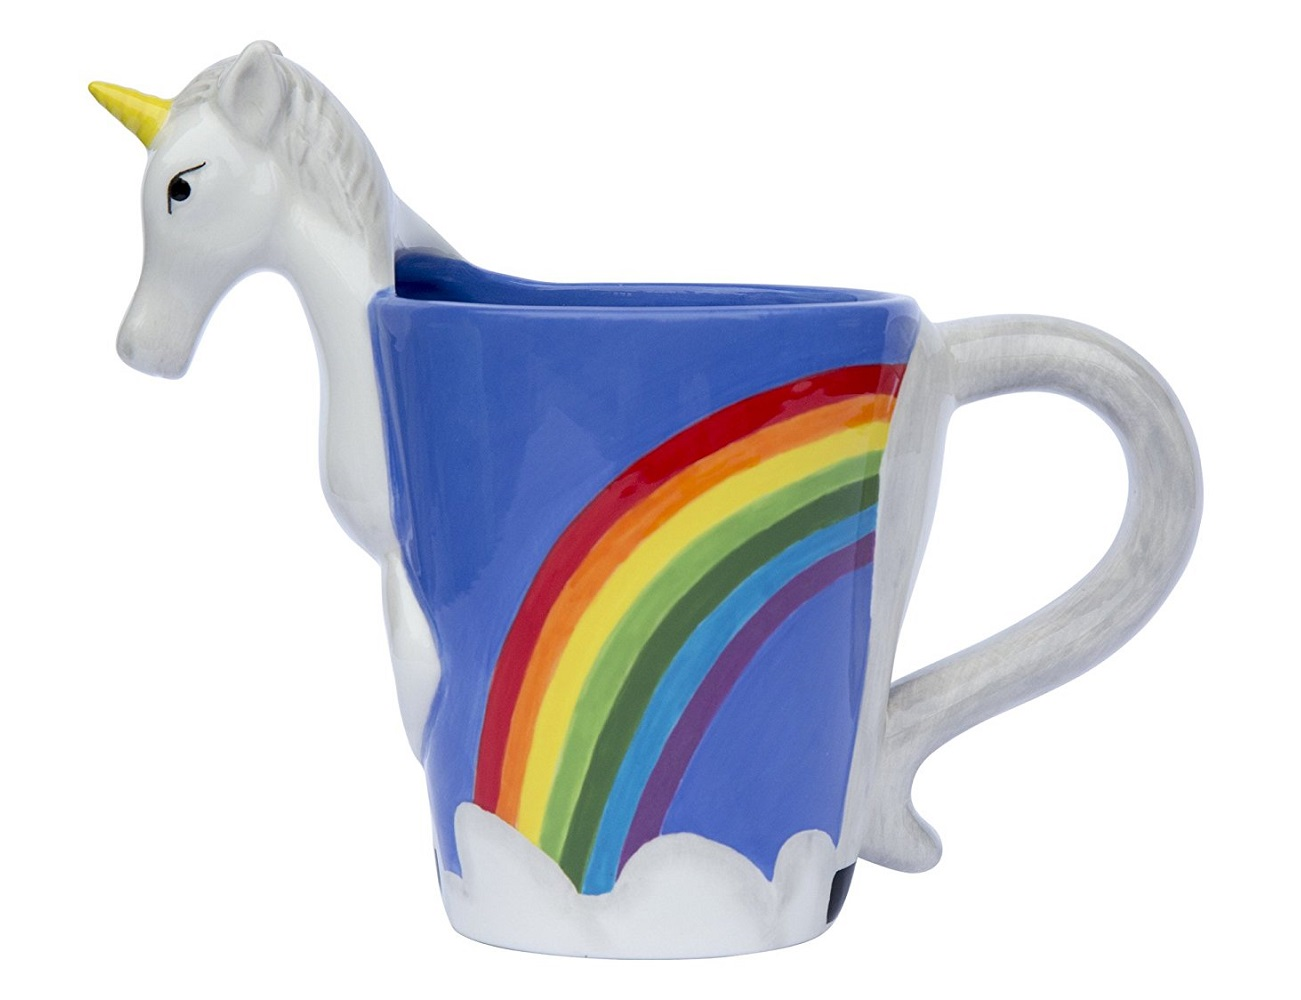 3D Unicorn Mug From ThinkGeek